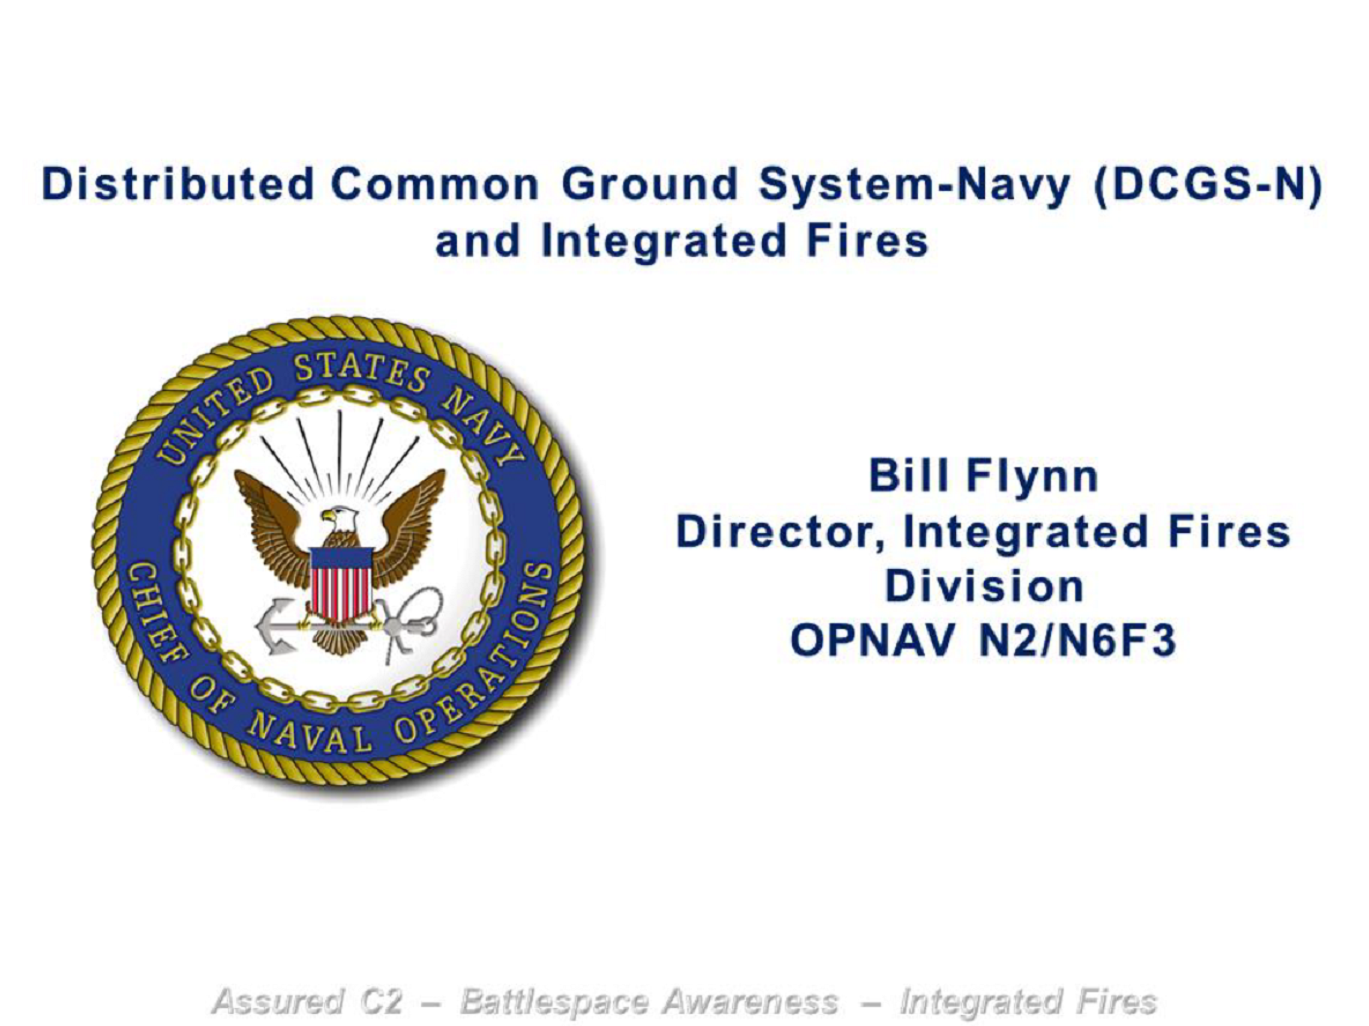 The Navy's Intelligence Perspective on Addressing DCGS Updates to Combat Security Threats